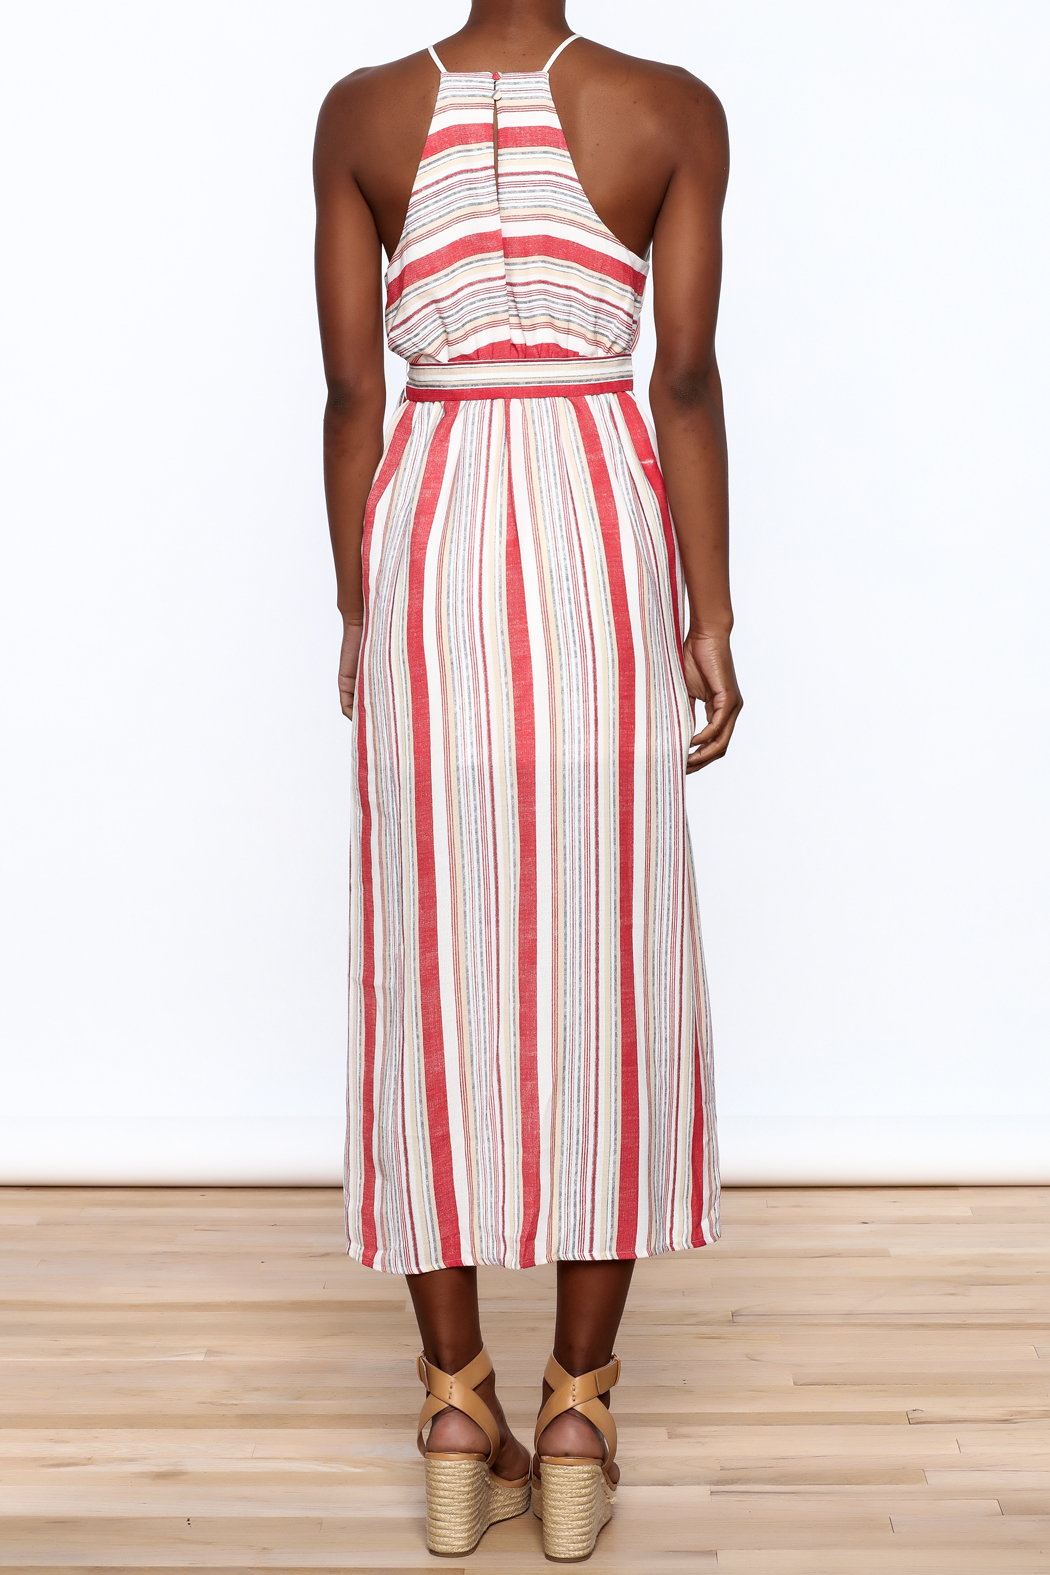 essue Red Stripe Sleeveless Dress - Back Cropped Image